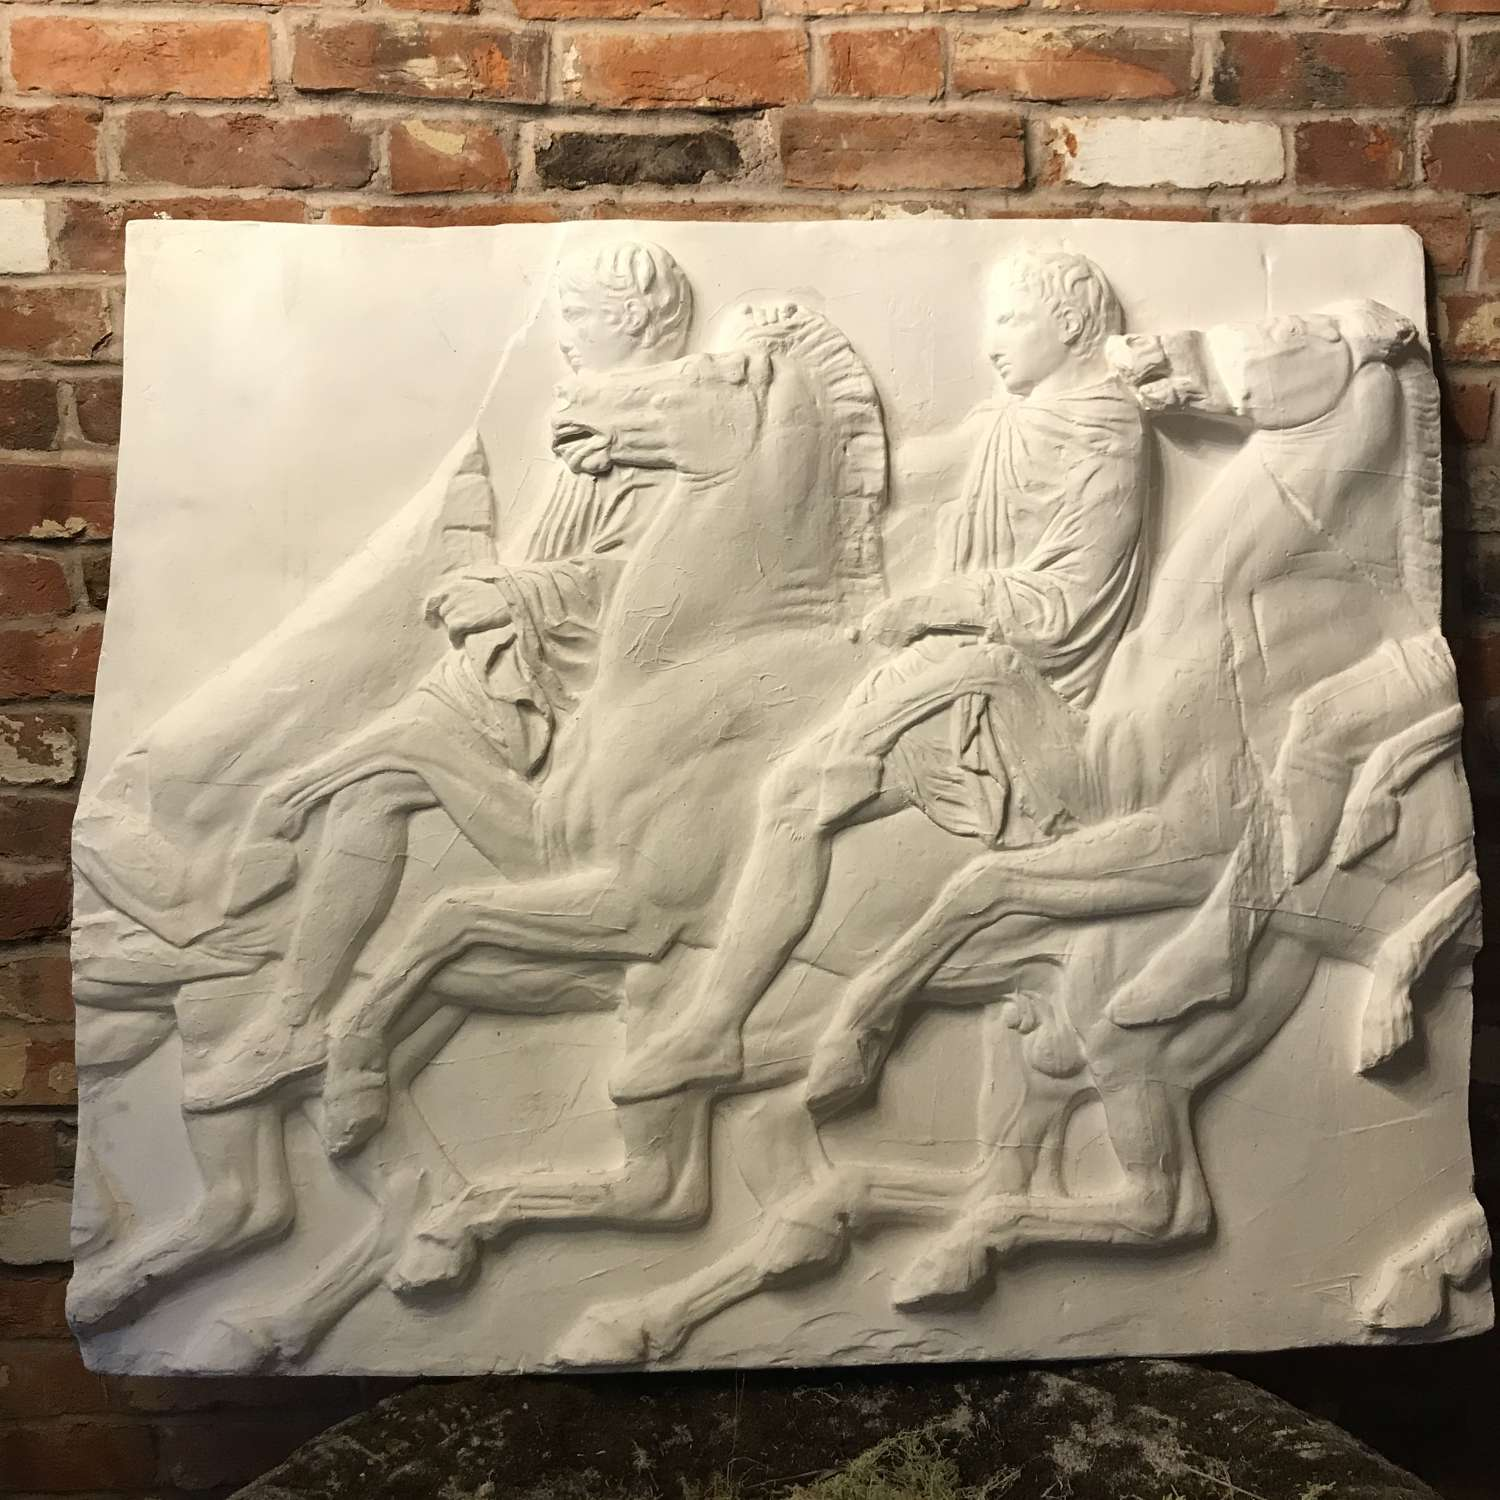 A plaster Panel of a section of the Parthenon Frieze